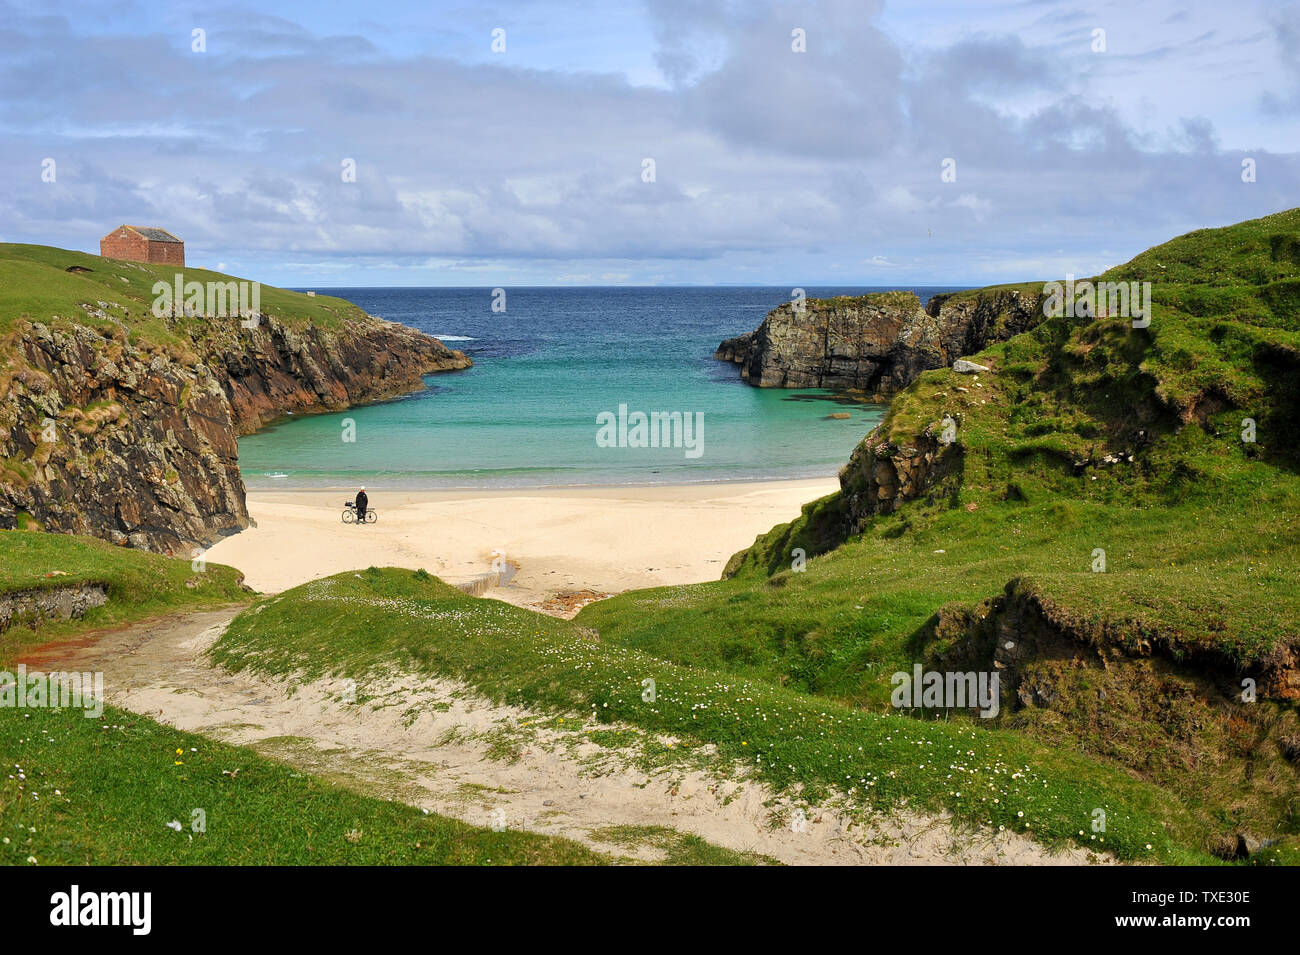 A cyclist enjoys a sunny day on deserted beach in the Outer Hebrides - Stock Image